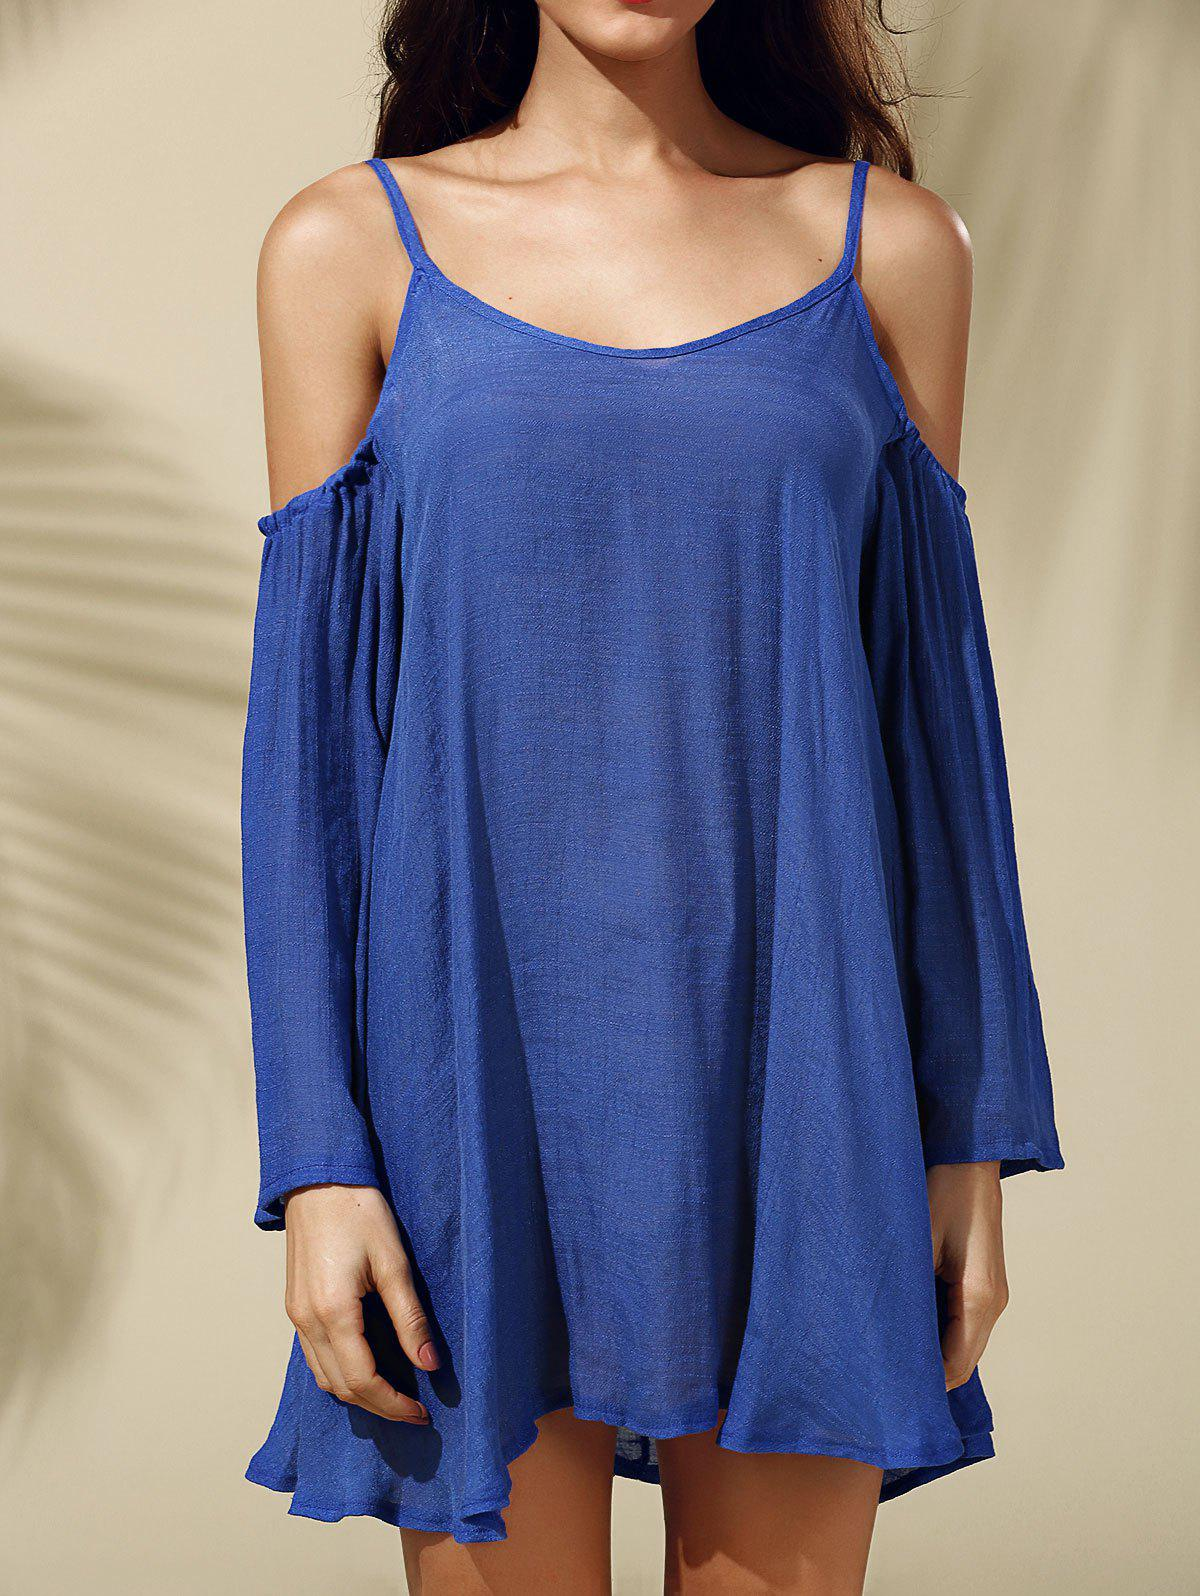 Stylish Women's Strappy Cold Shoulder Solid Color Dress